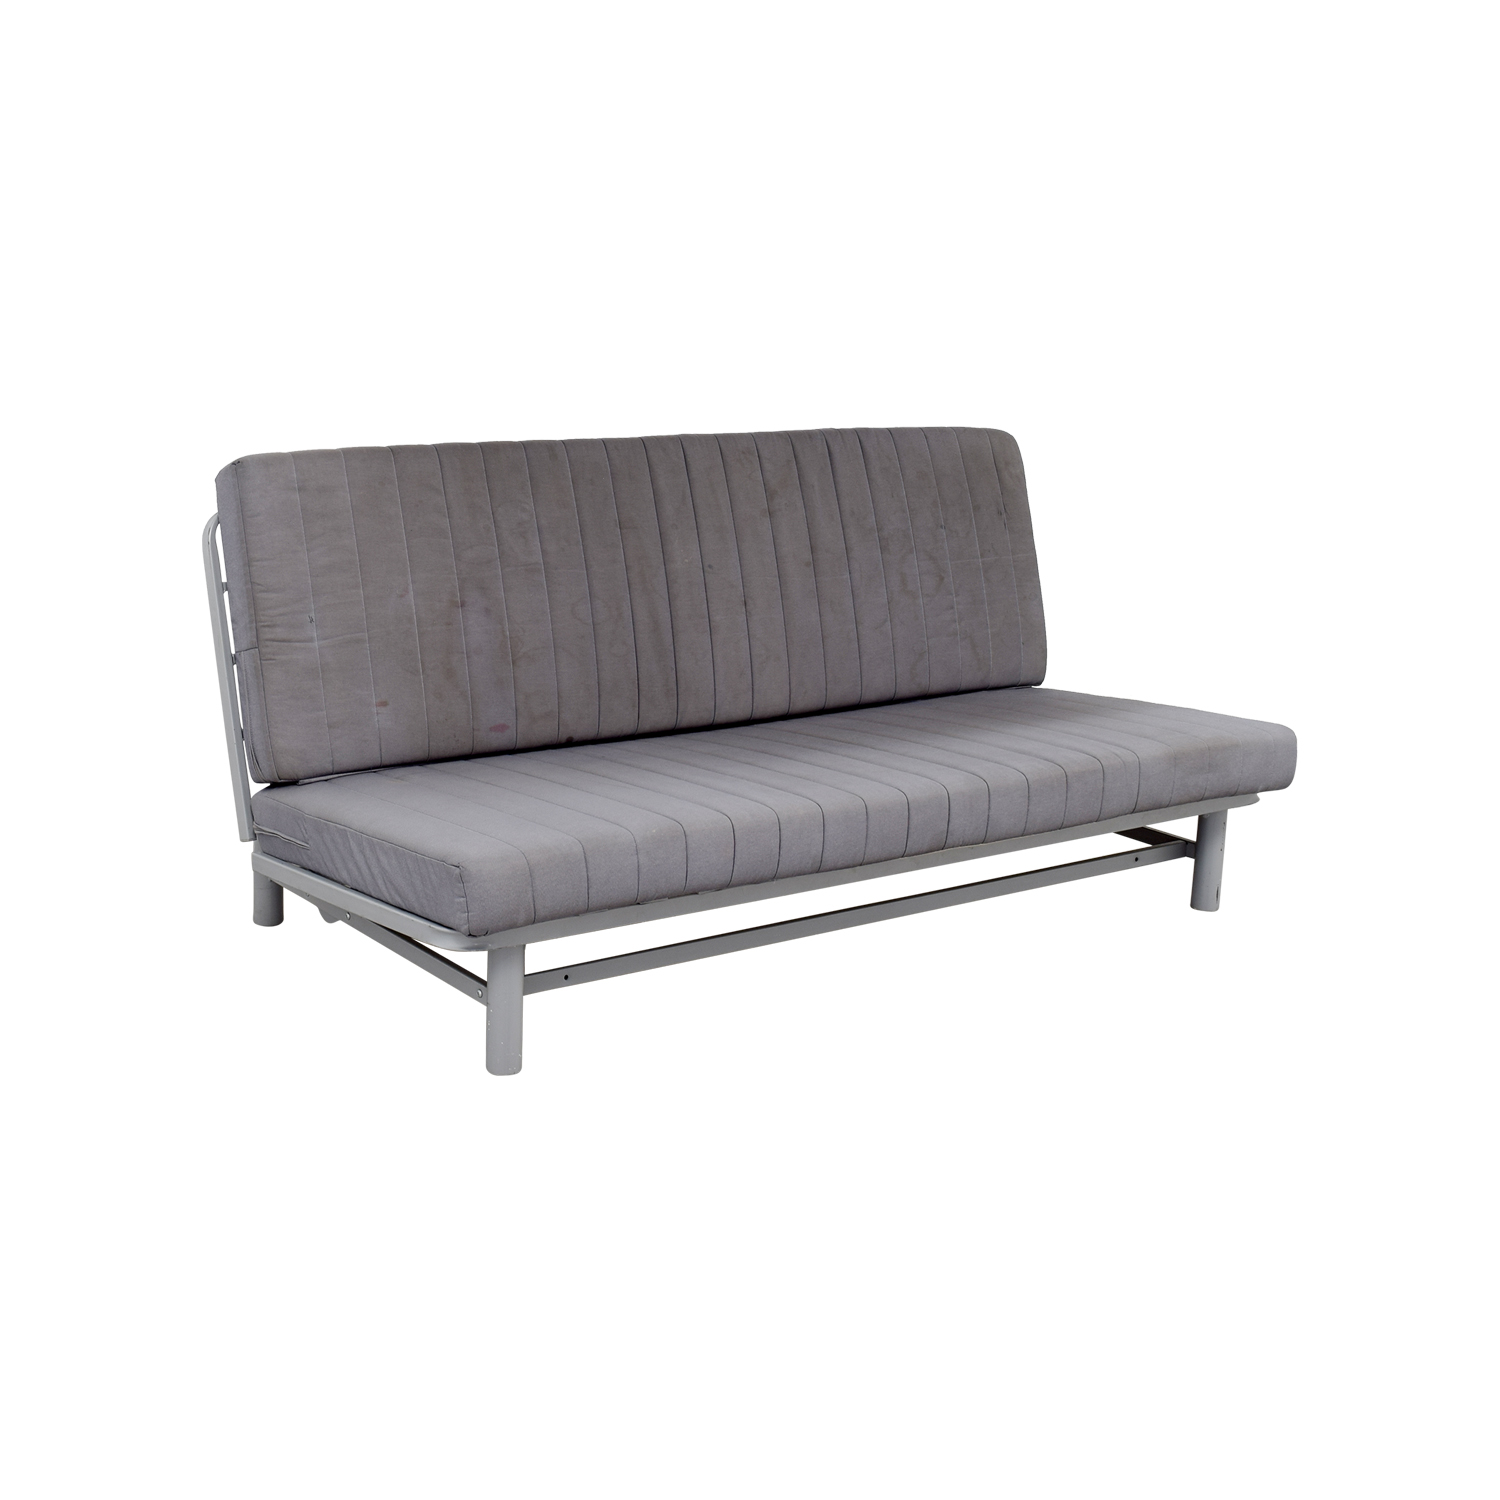 Ikea Sofa Bed 90 Off Ikea Ikea Grey Sofa Bed Sofas